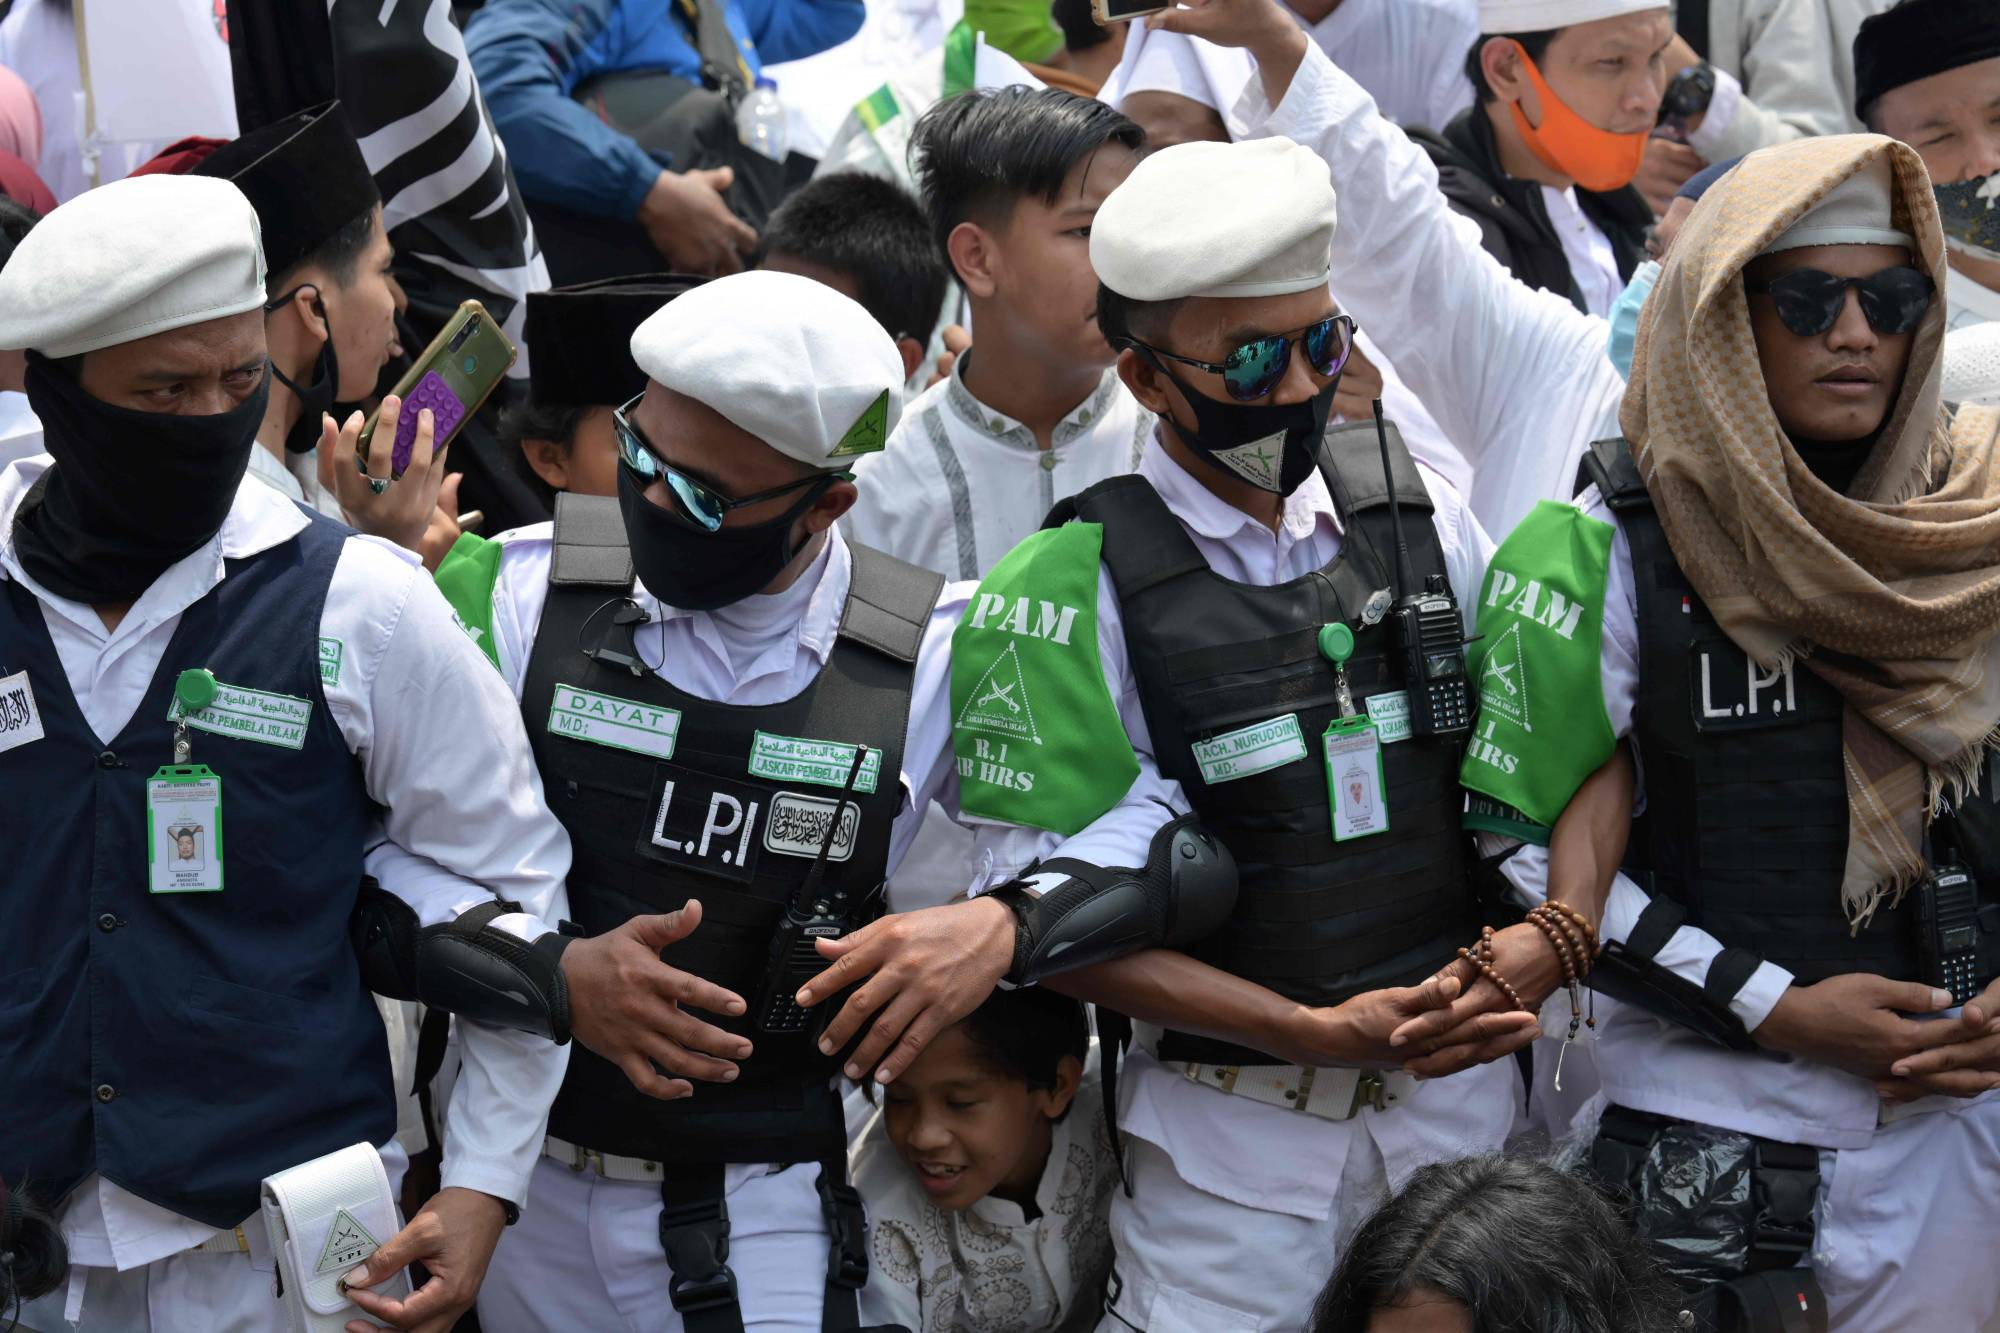 Supporters of Rizieq Shihab, leader of the Islamic Defenders Front, gather at the organization's headquarters in Jakarta on Nov. 10. | AFP-JIJI